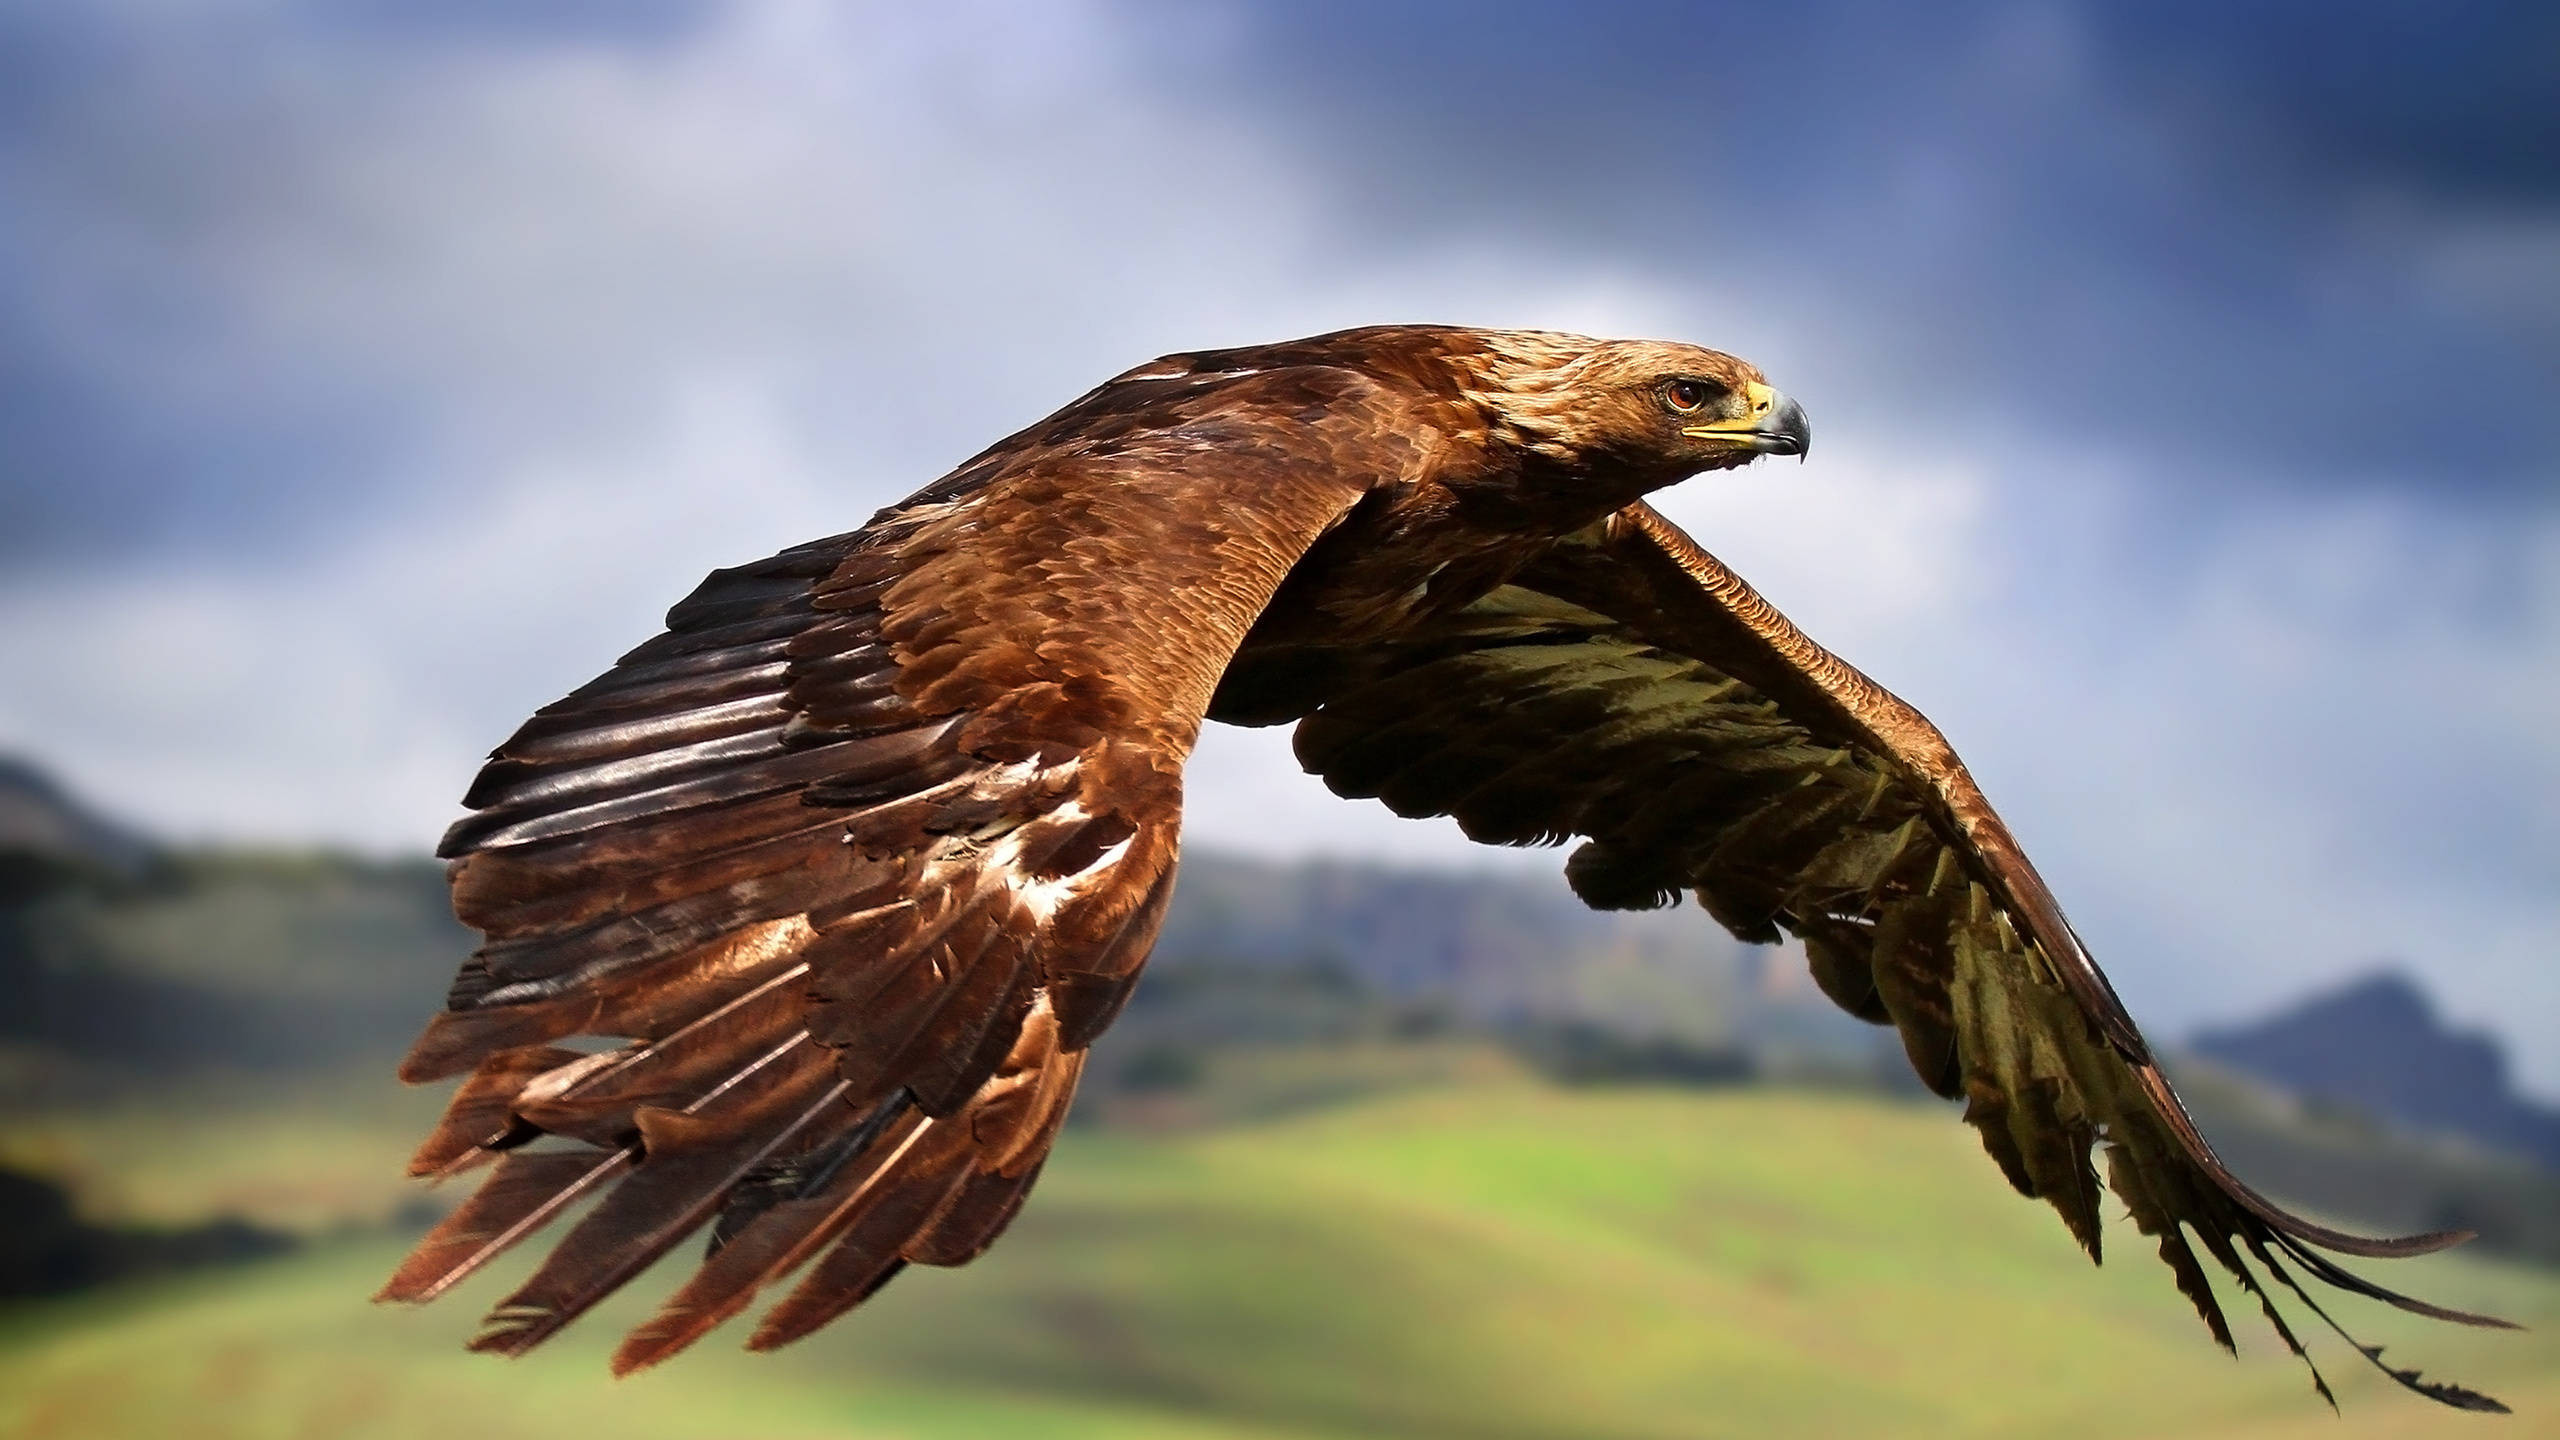 Wallpaper Eagle in Fight [1920×1080]   High Quality Wallpapers   Pinterest    Bald eagles